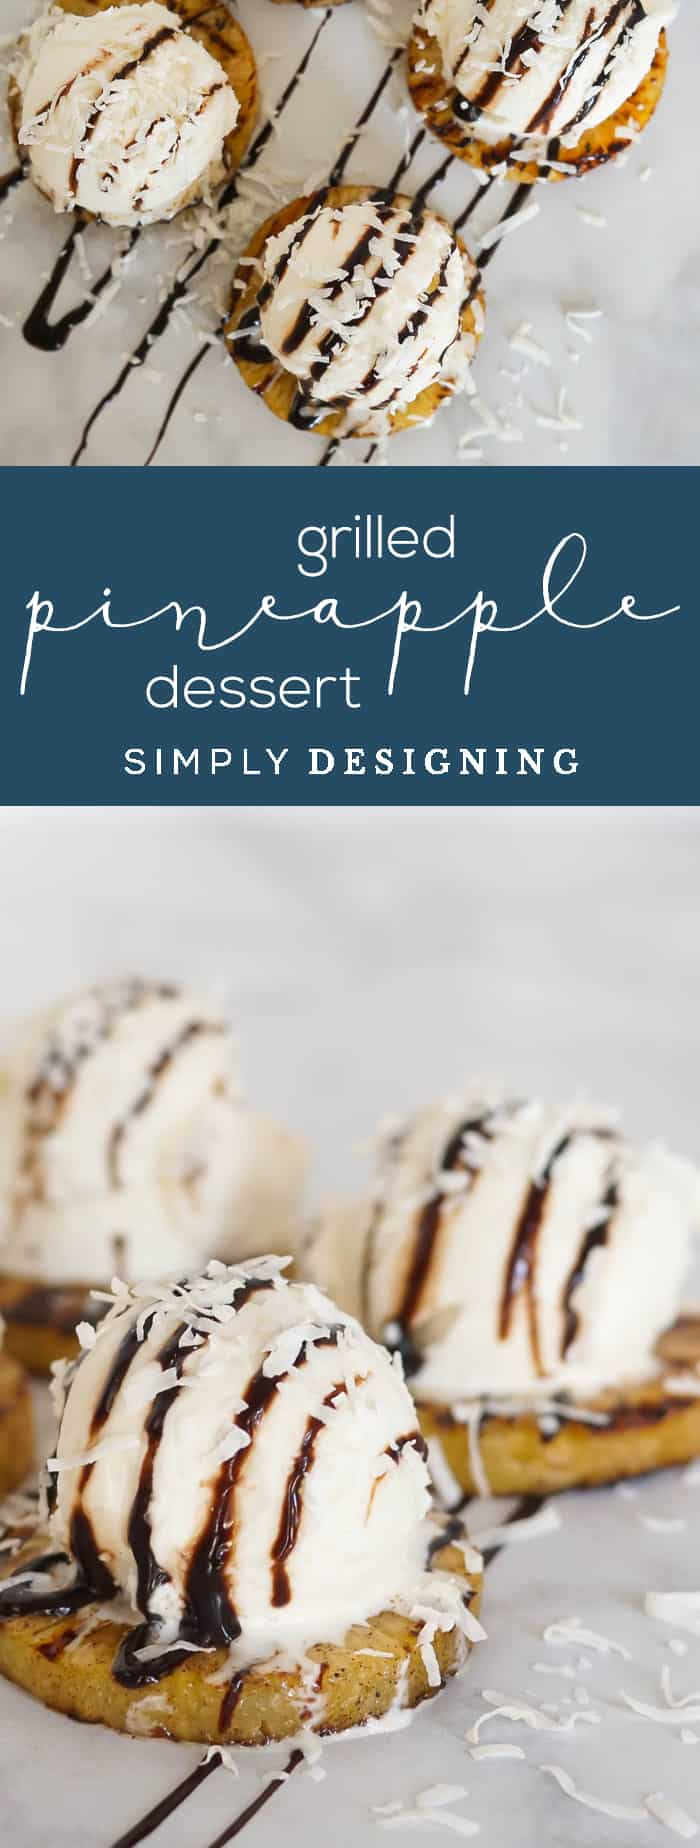 The Best Grilled Pineapple Recipe and a Scrumptious Pineapple Dessert Idea